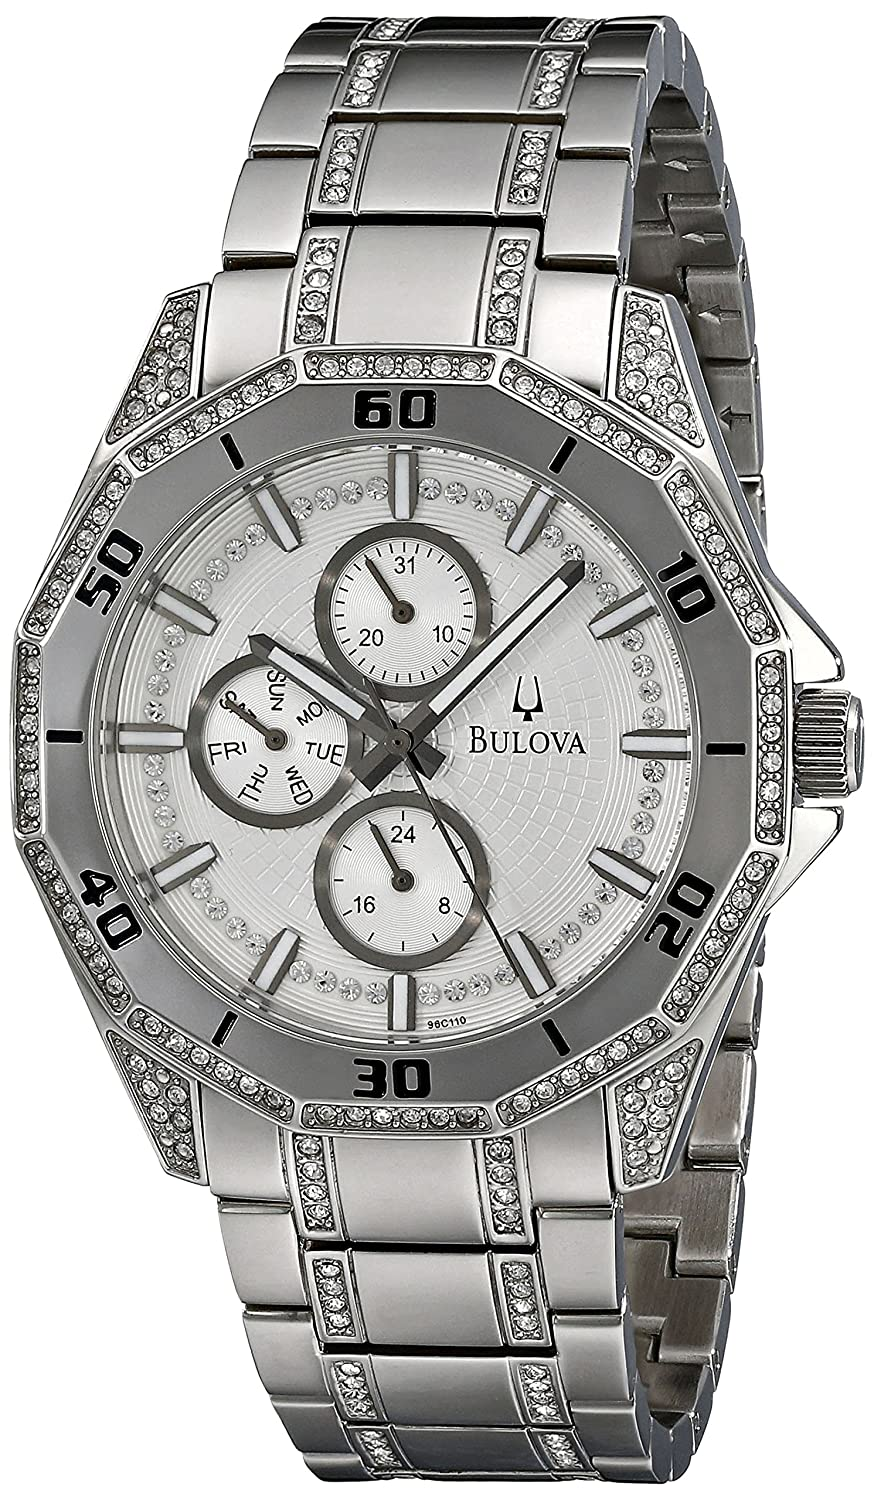 Bulova Men's 96C110 Crystal Multifunction Watch bulova 44l231